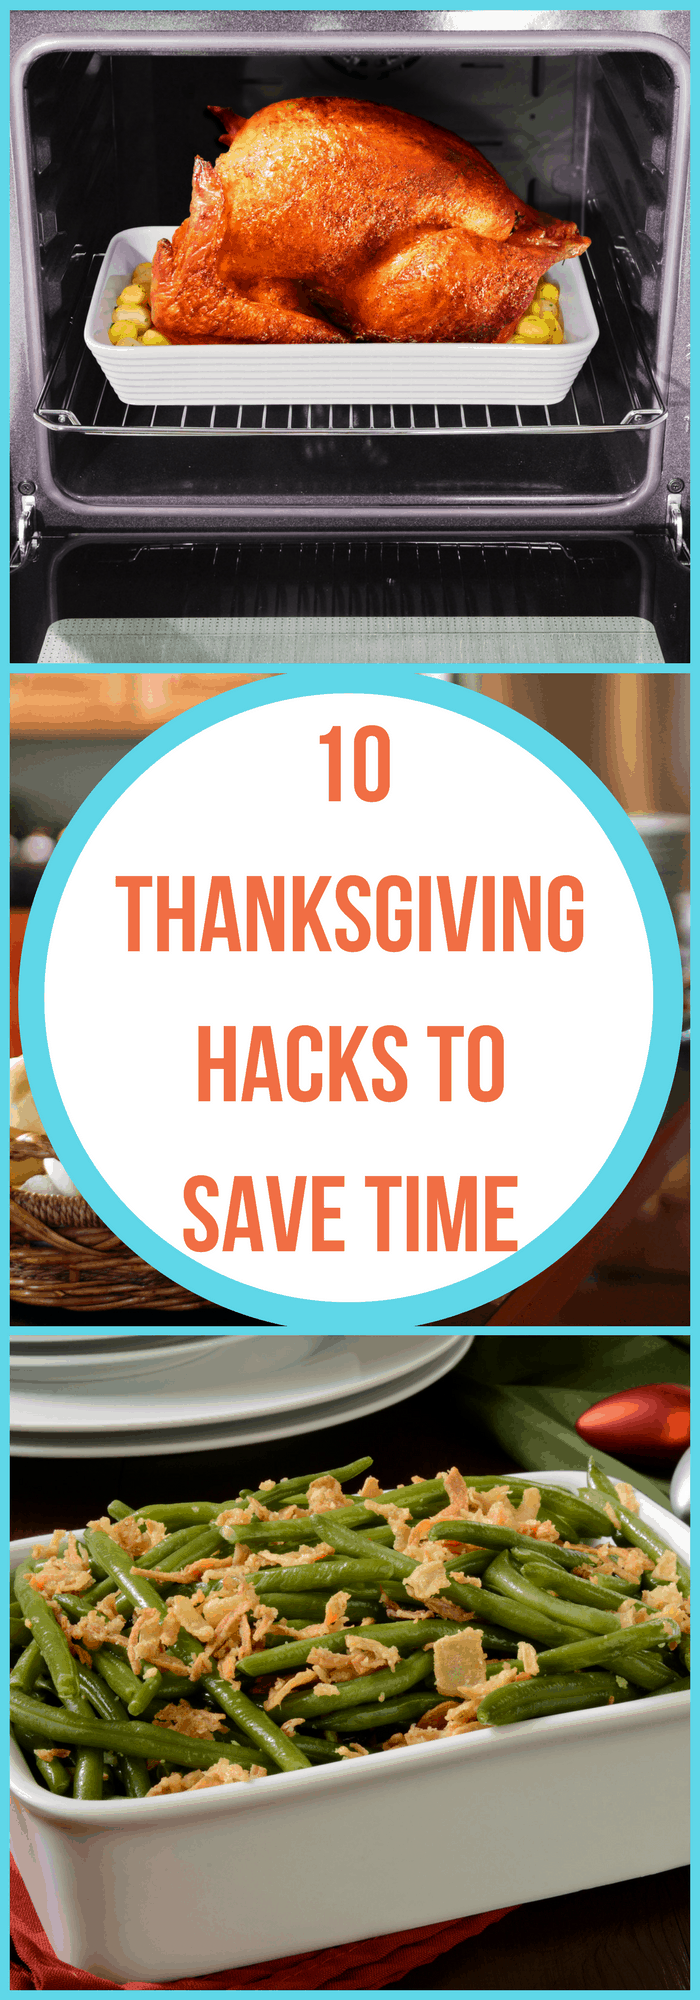 Cooking--Thanksgiving Food Hacks to Save Time--The Organized Mom